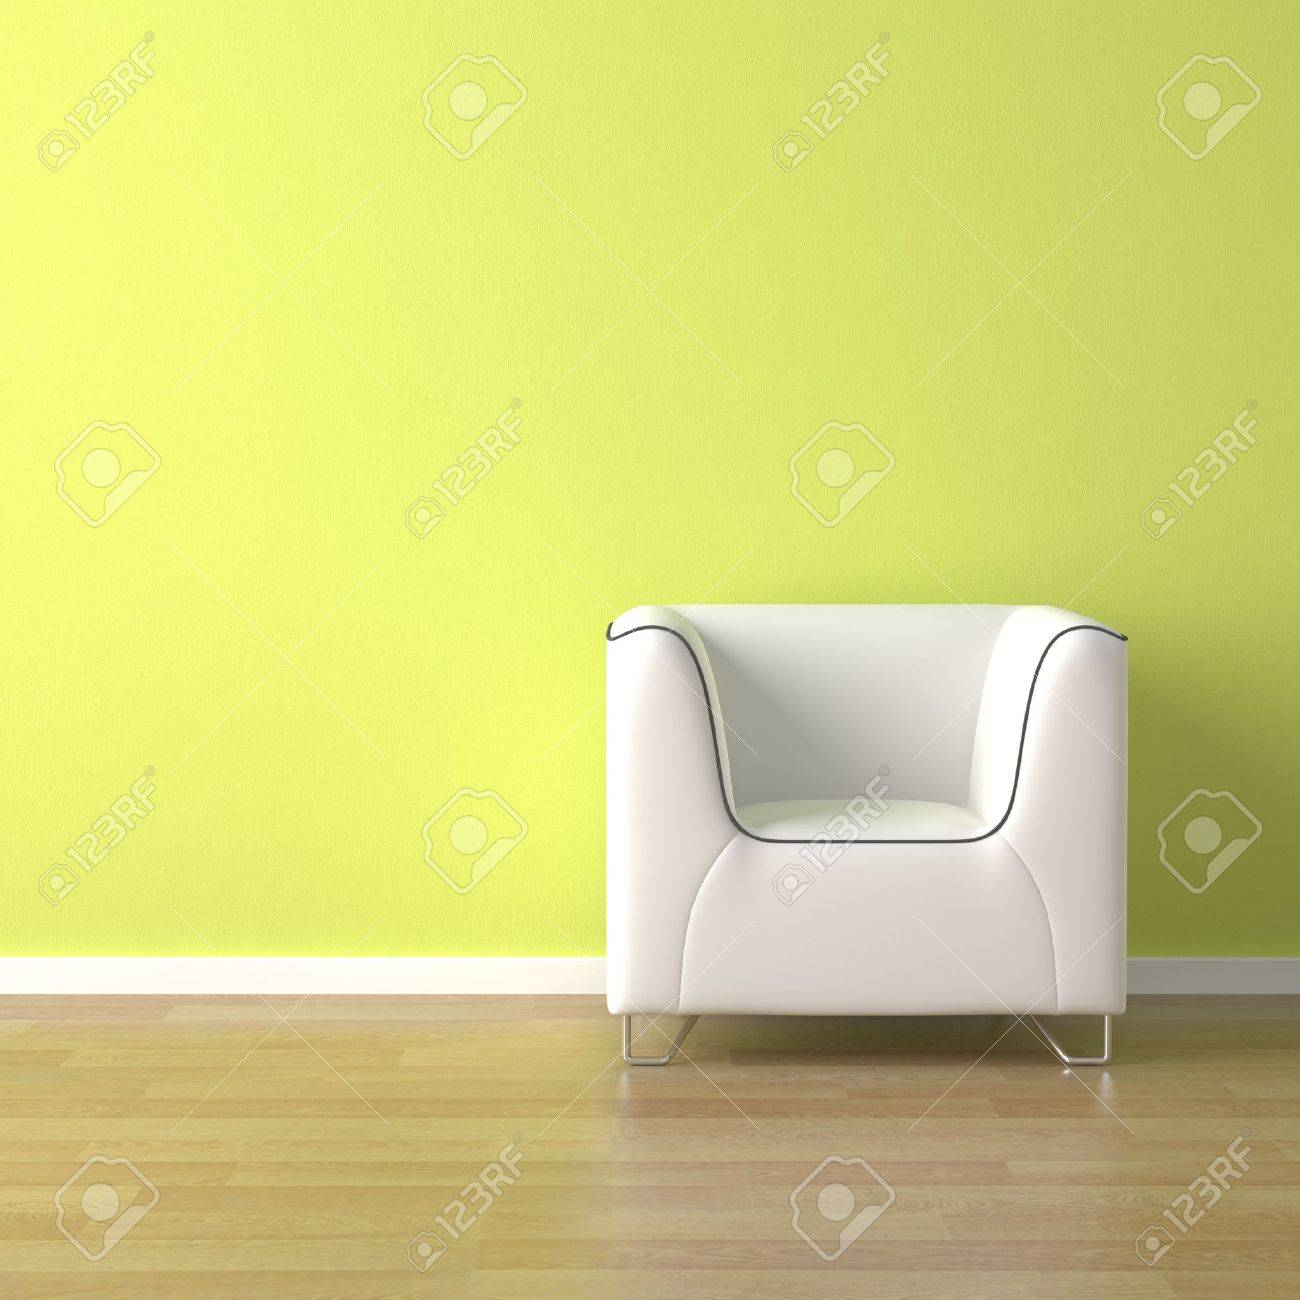 interior design scene white couch on a green wall background with copy space Stock Photo - 5453599